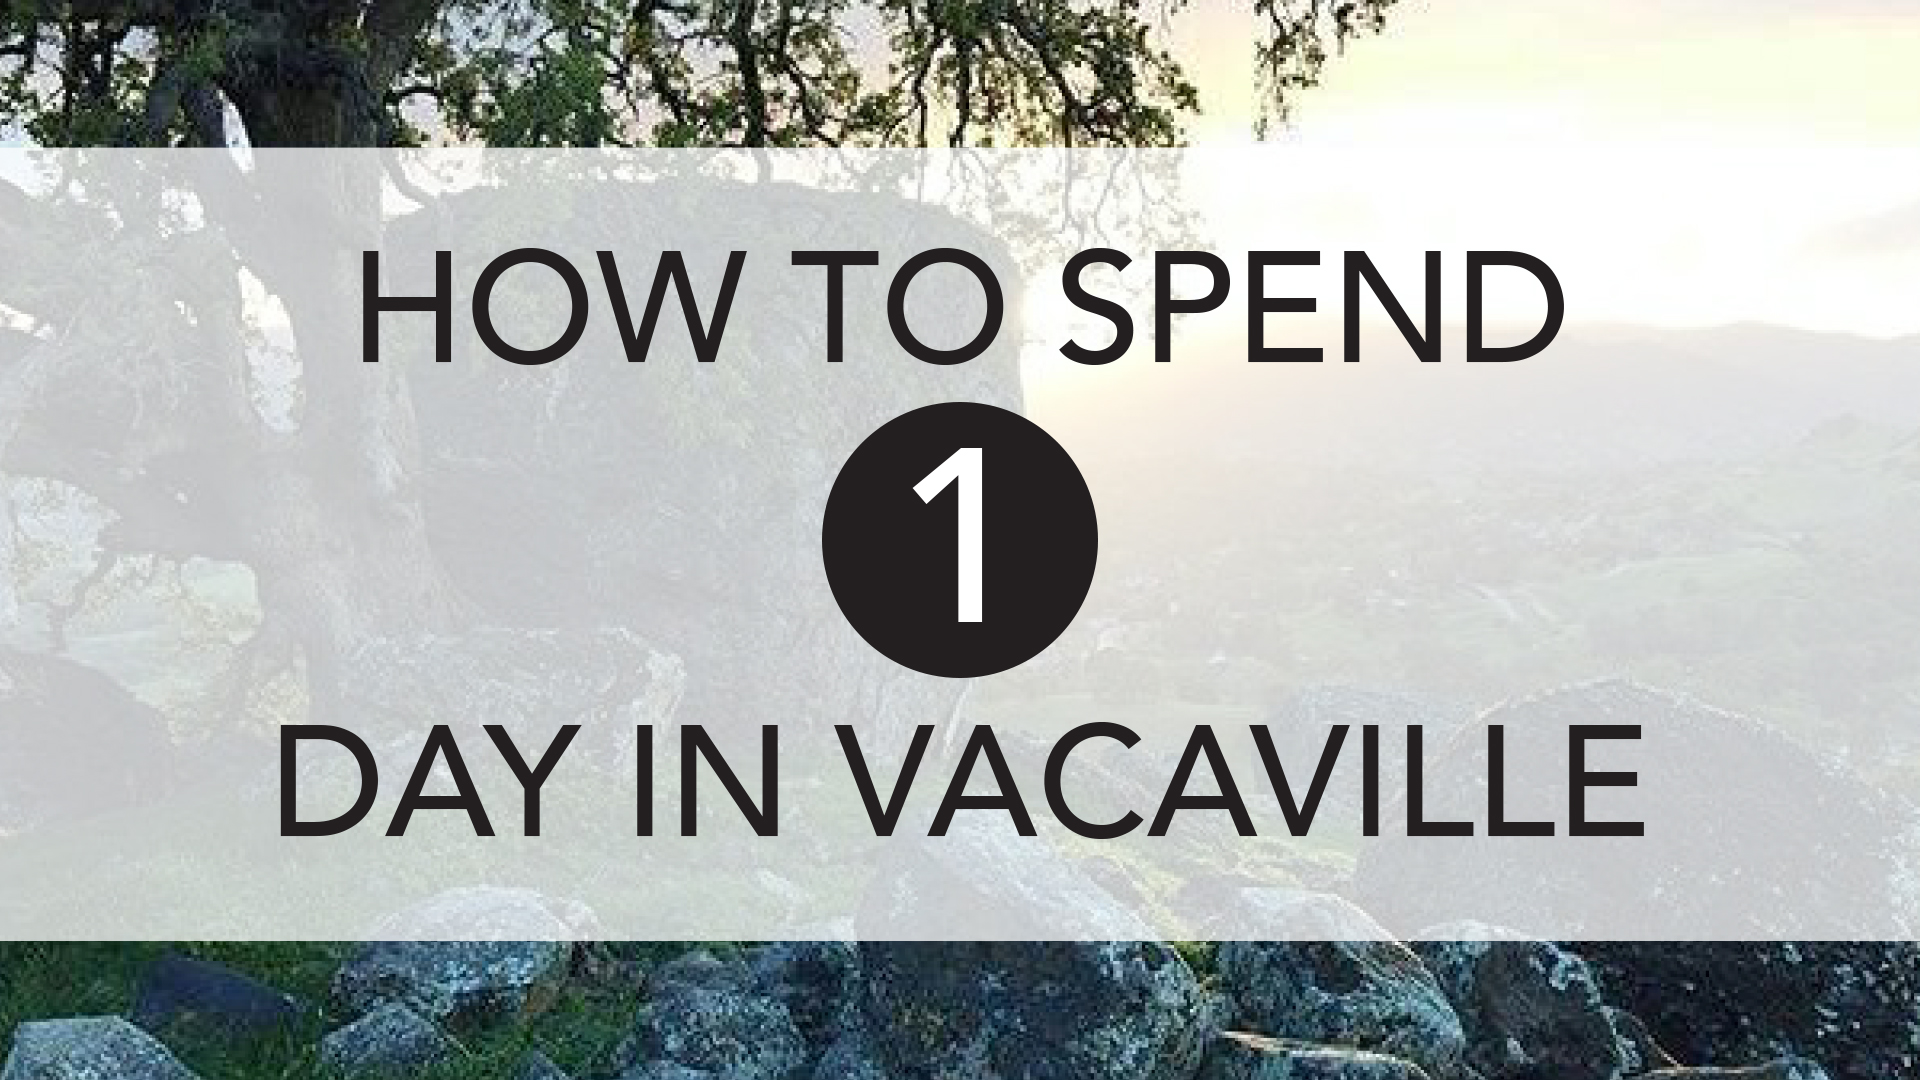 how to spend 1 day in vacaville